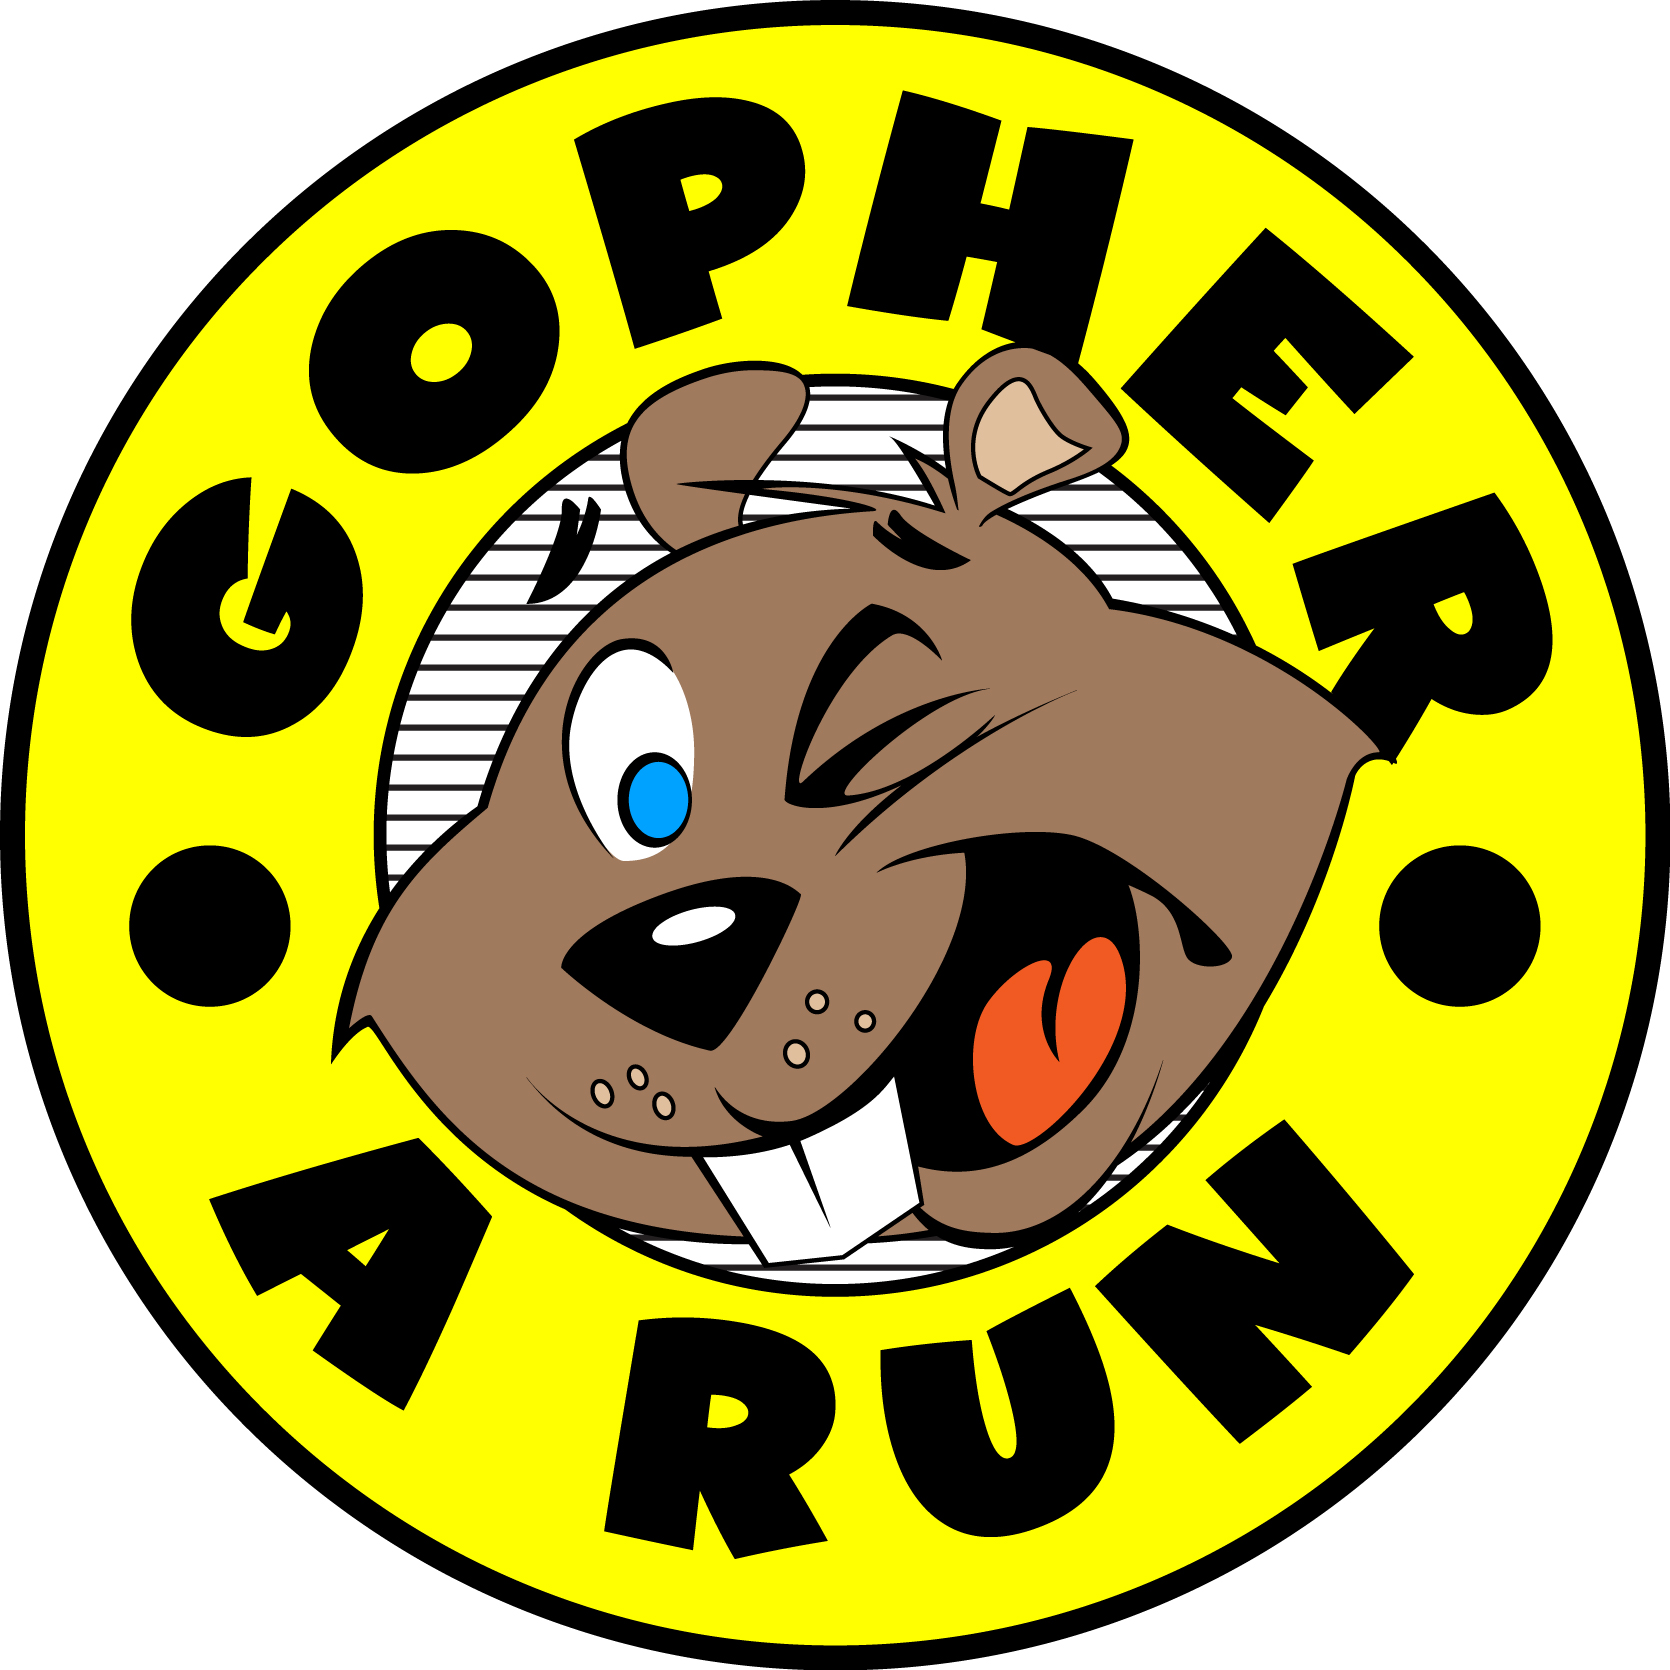 http://gopherarun.com/results/gopher_color.jpg